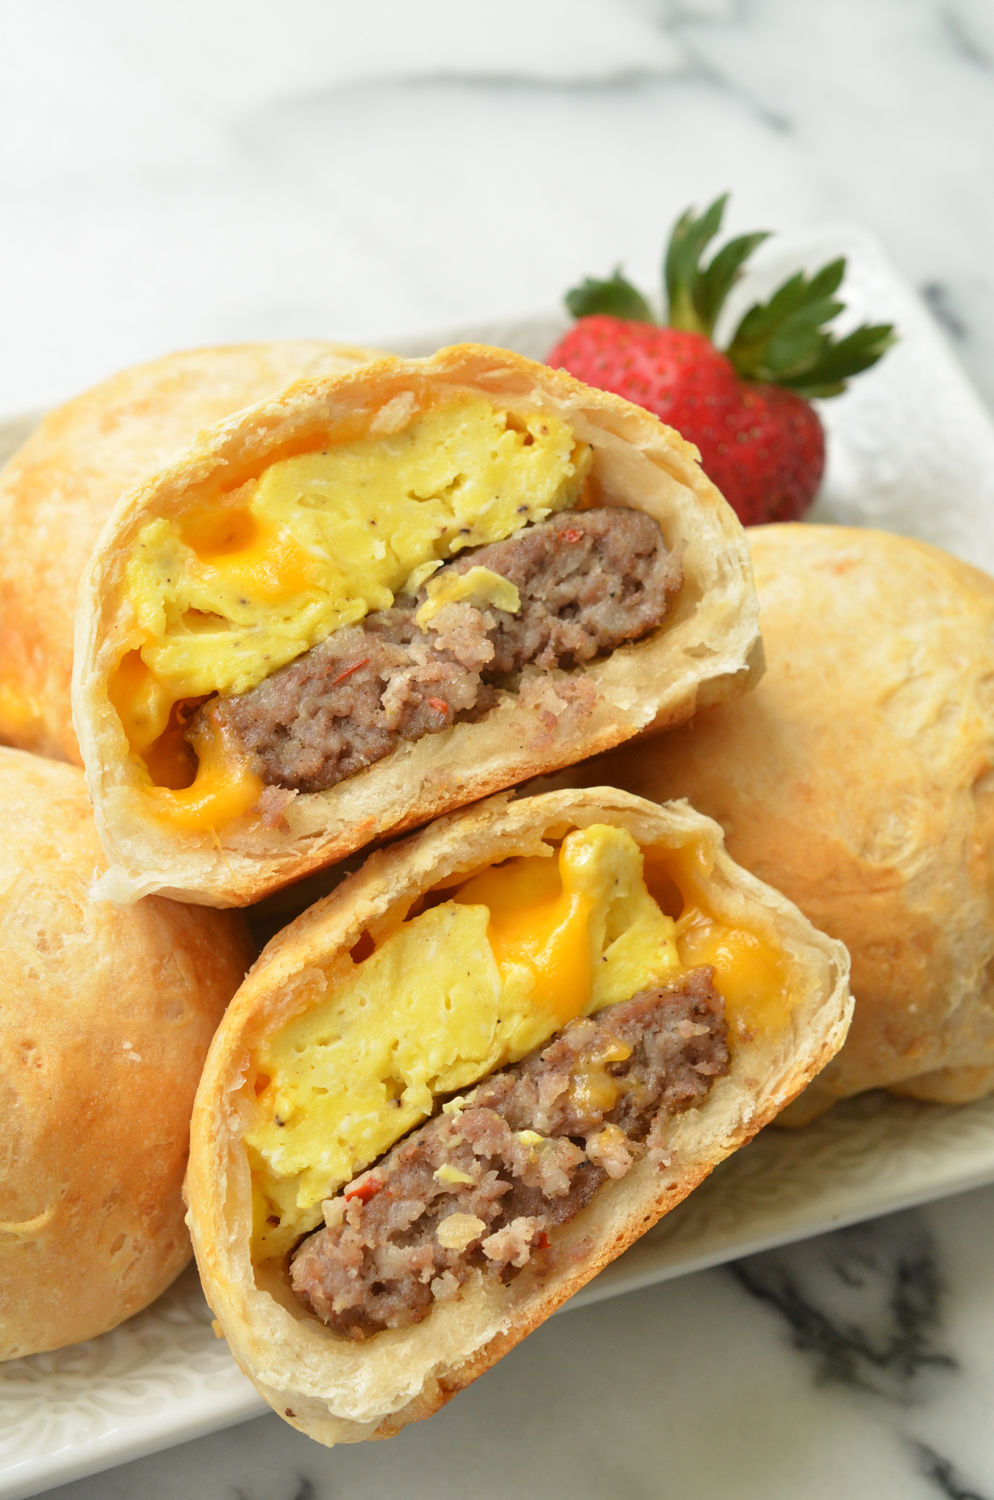 These 5-ingredient Sausage Egg Stuffed Breakfast Biscuits make mornings less hectic. This make-ahead breakfast is an easy recipe that makes meal prep a snap.